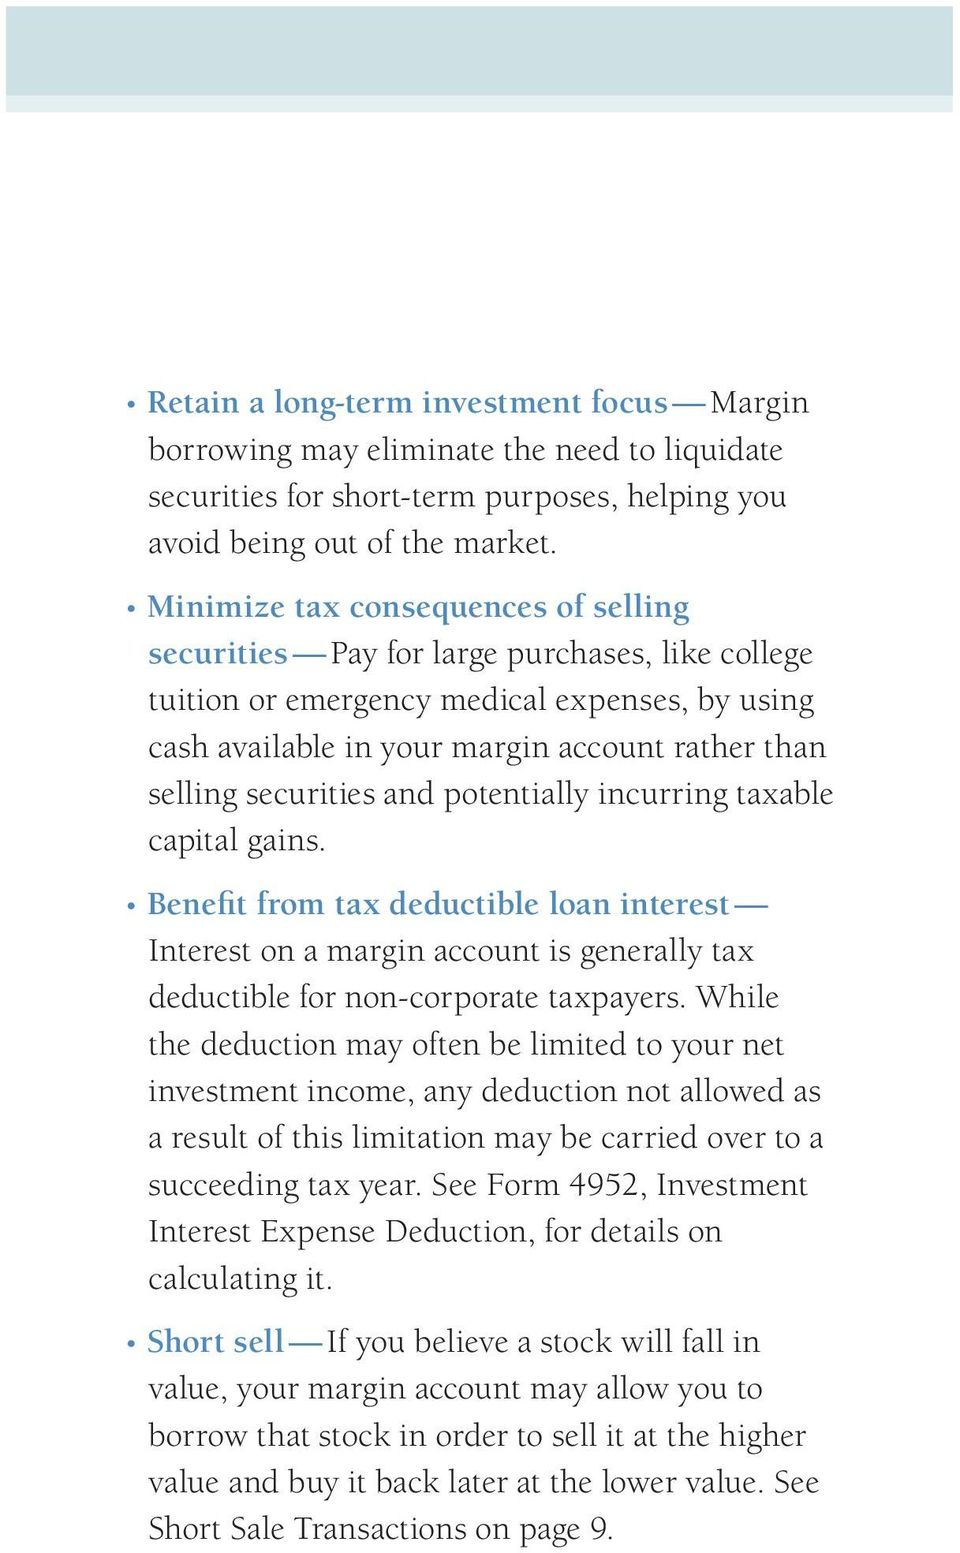 securities and potentially incurring taxable capital gains. Benefit from tax deductible loan interest Interest on a margin account is generally tax deductible for non-corporate taxpayers.